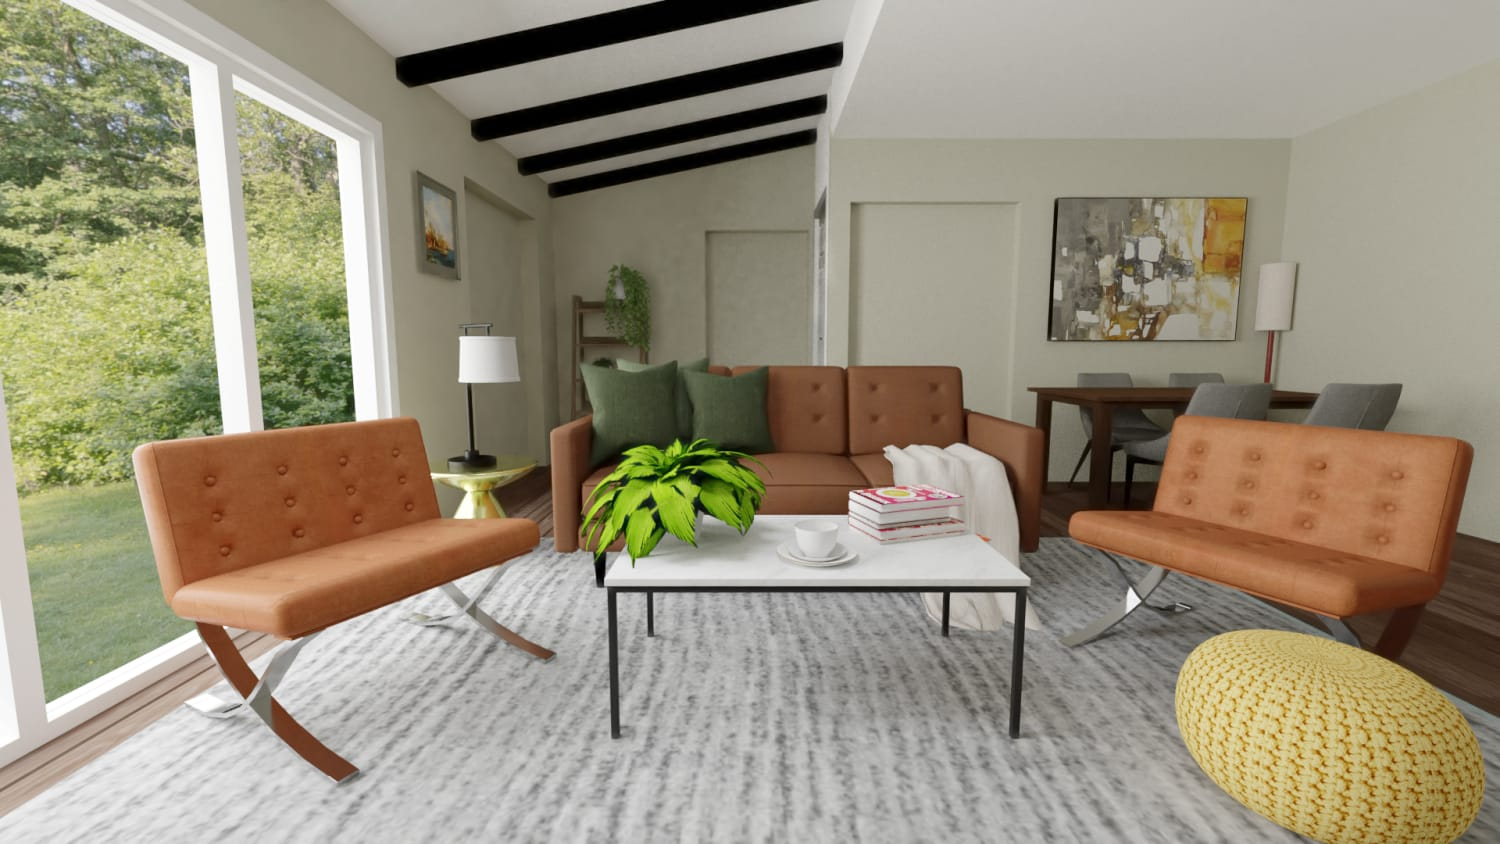 Mid-Century Classic Open Living Room and Dining Area Design By Spacejoy